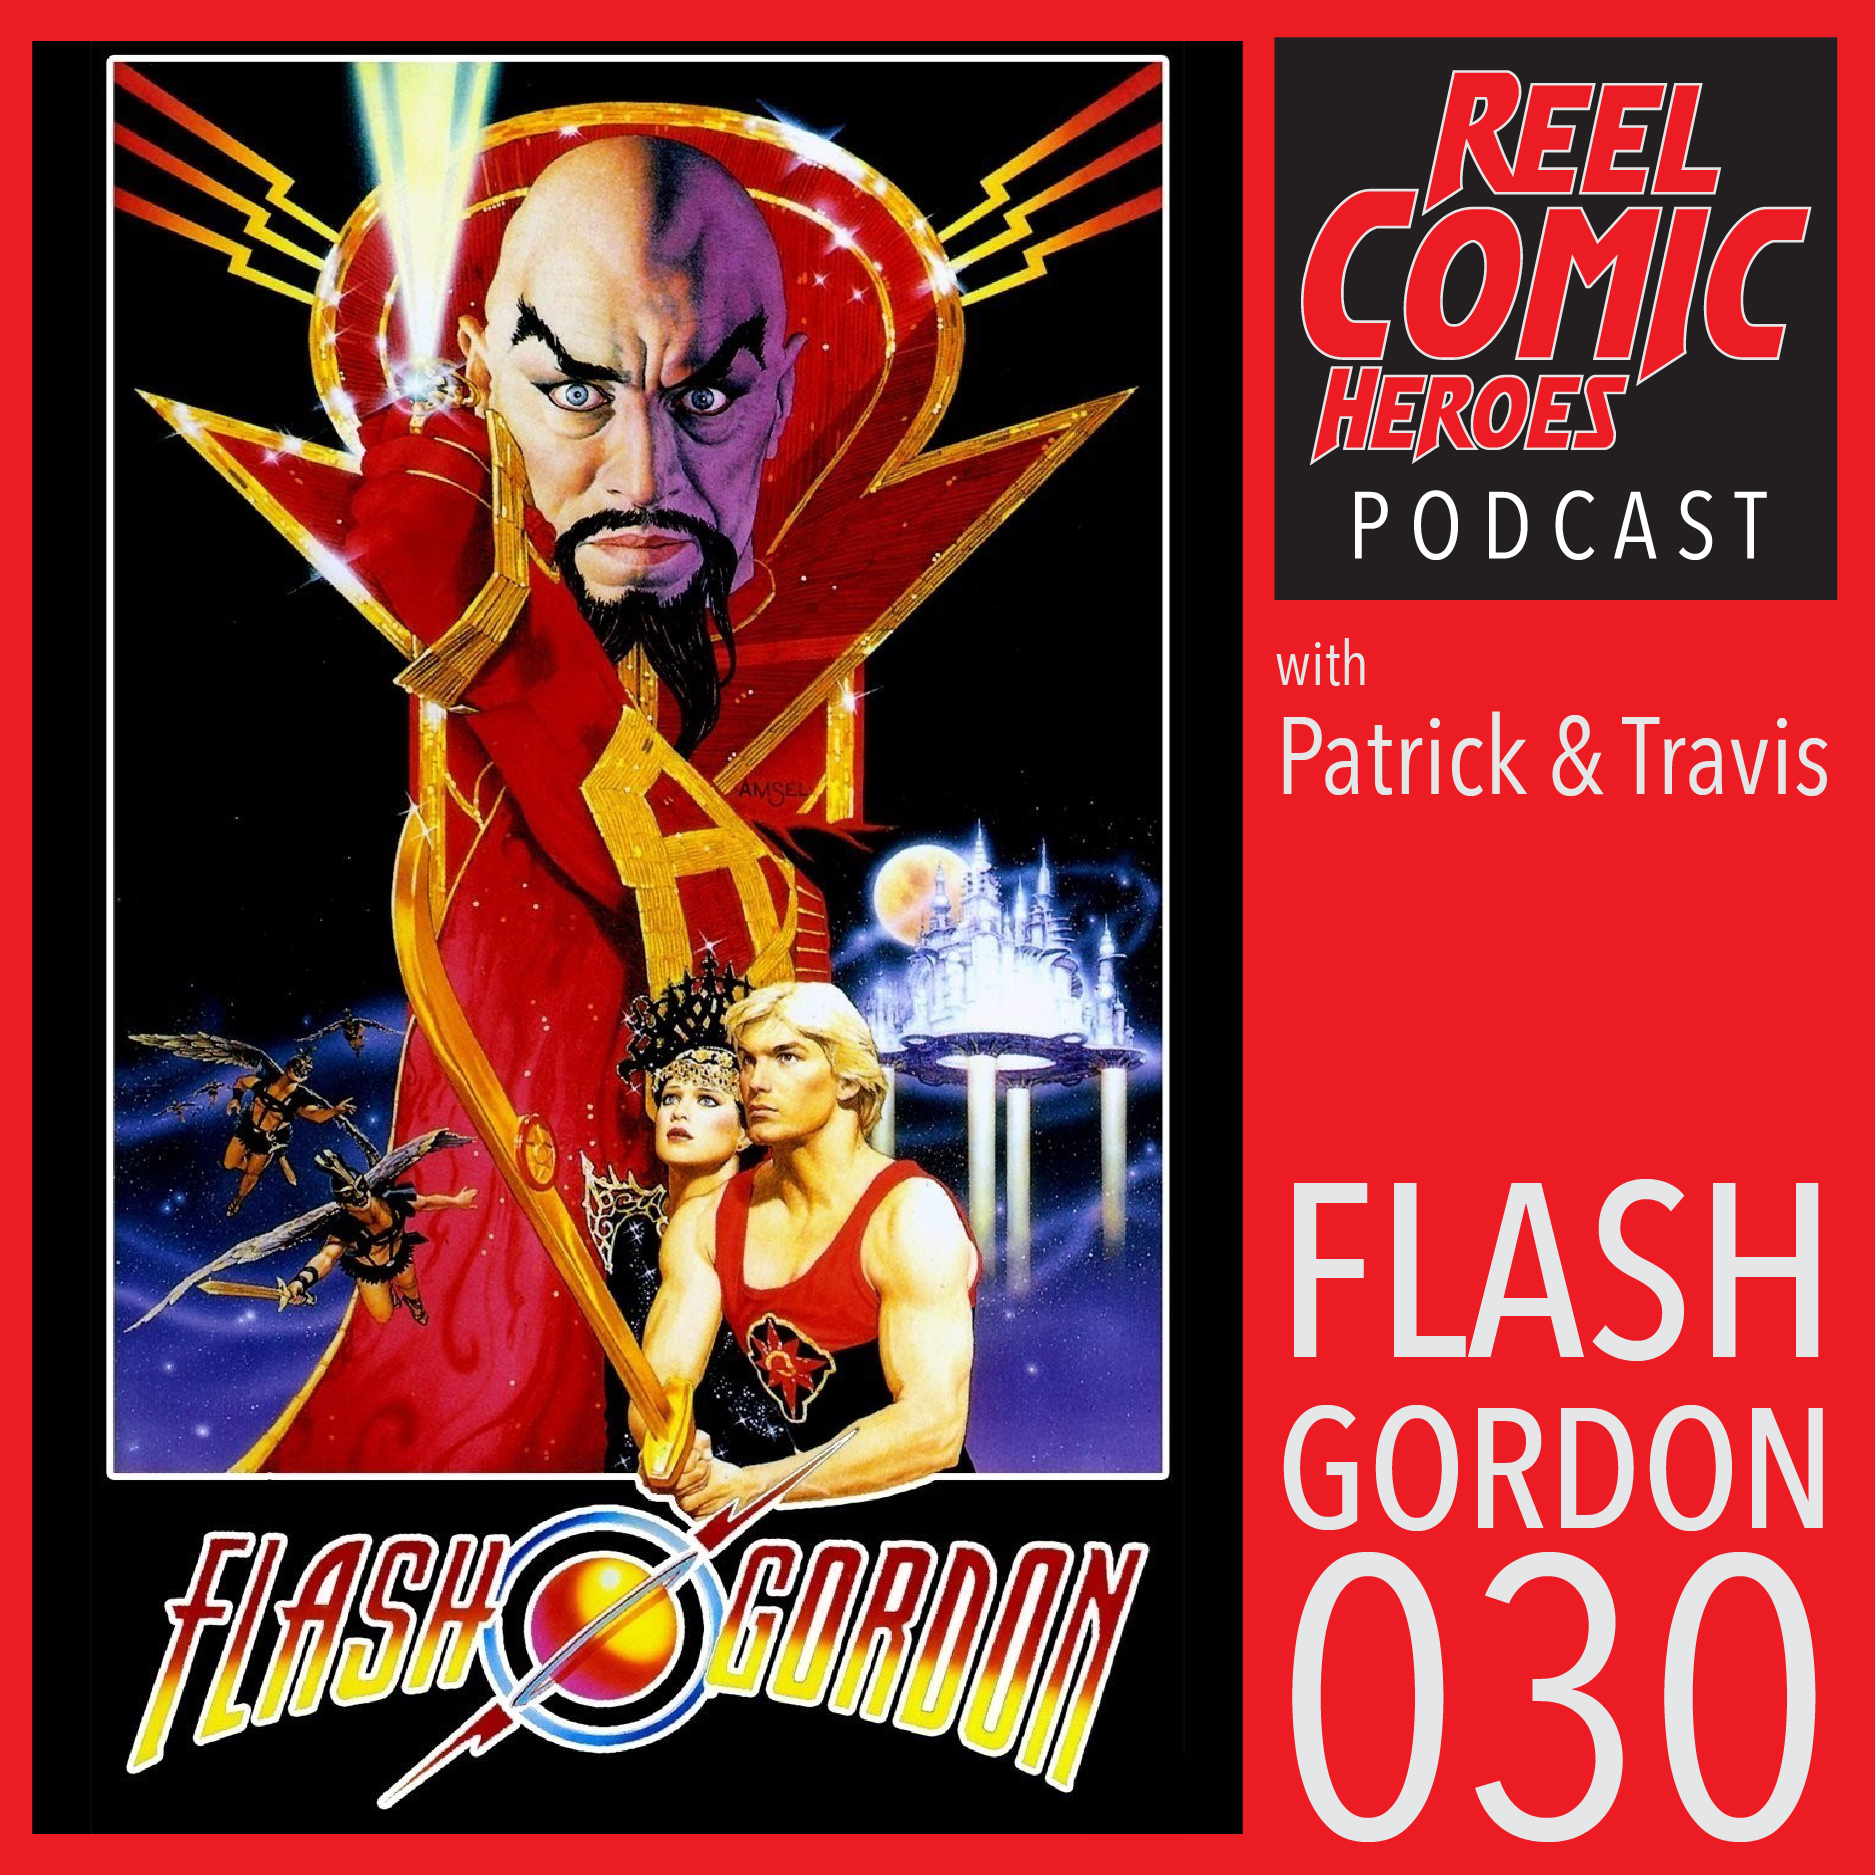 Artwork for Reel Comic Heroes 030 - Flash Gordon